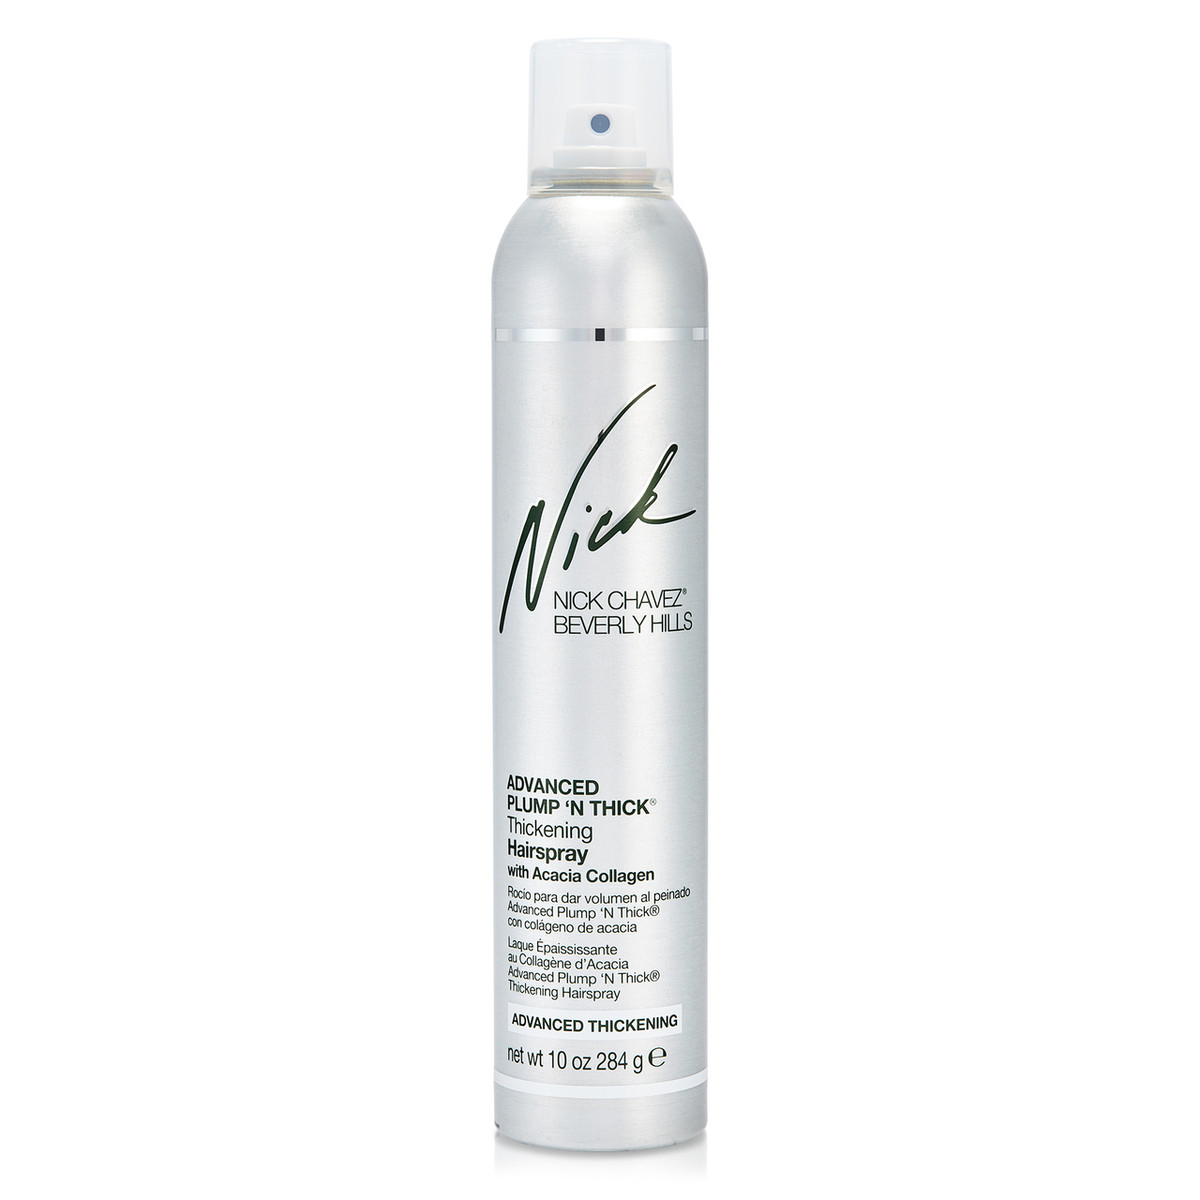 Advanced Plump 'N Thick Thickening Hairspray